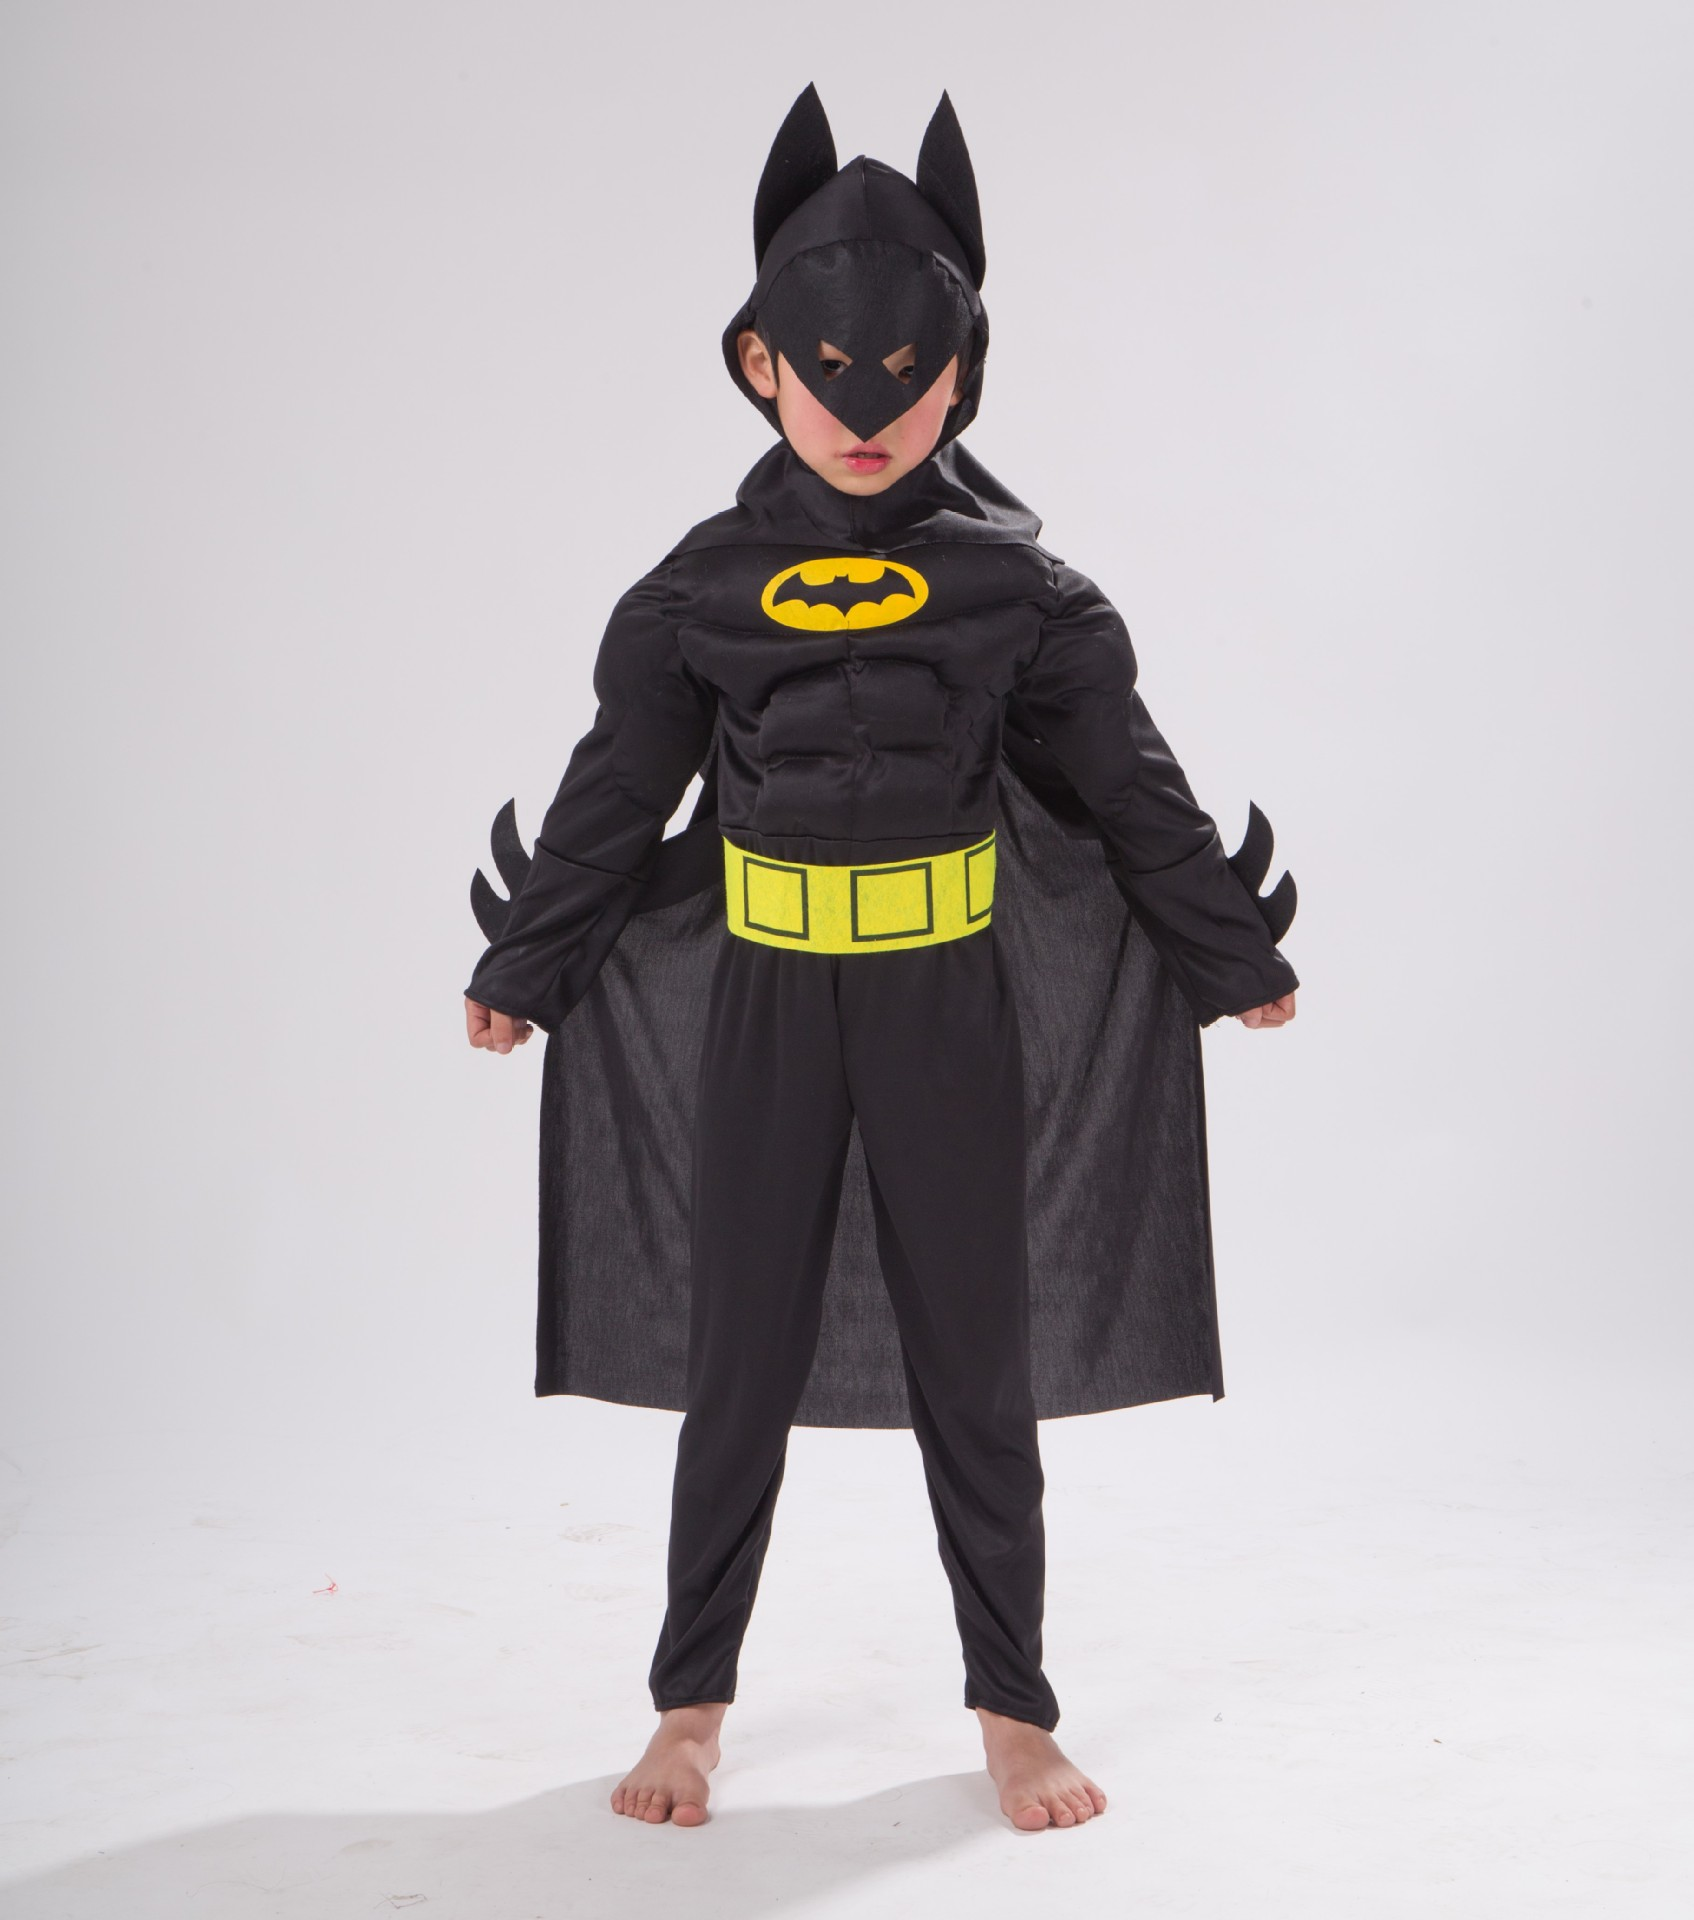 Bat Man Halloween Cosplay Costume for Kids Avengers Batman Muscle Jumpsuits Mask Children Boys Clothes Superhero party clothing